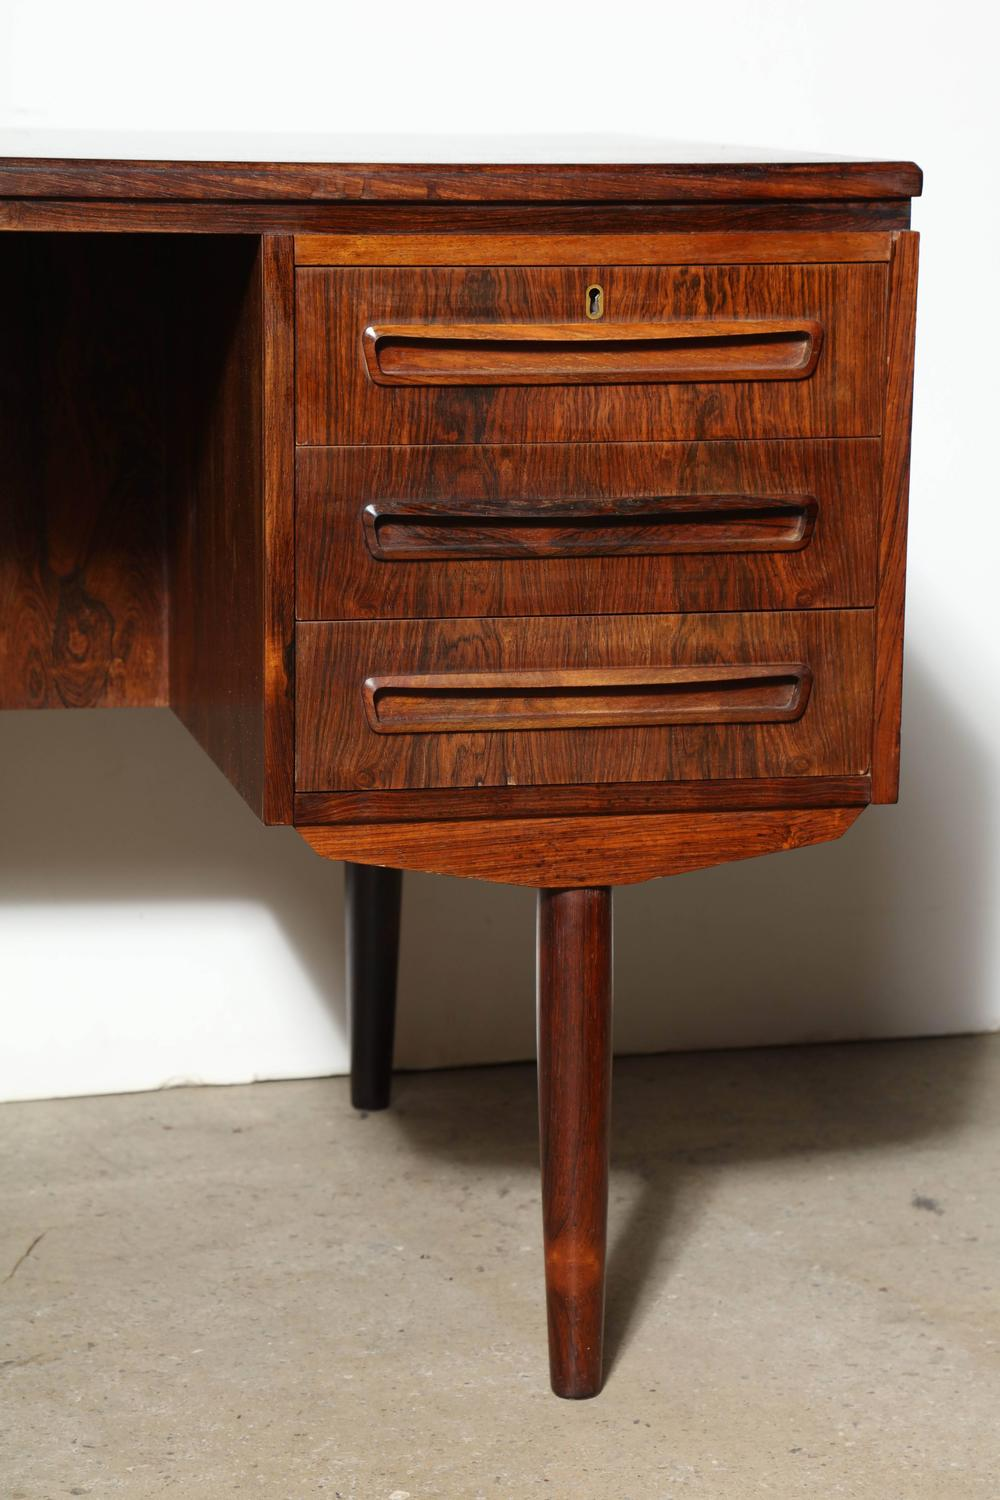 Kai Kristiansen Two Sided Rosewood Desk at 1stdibs